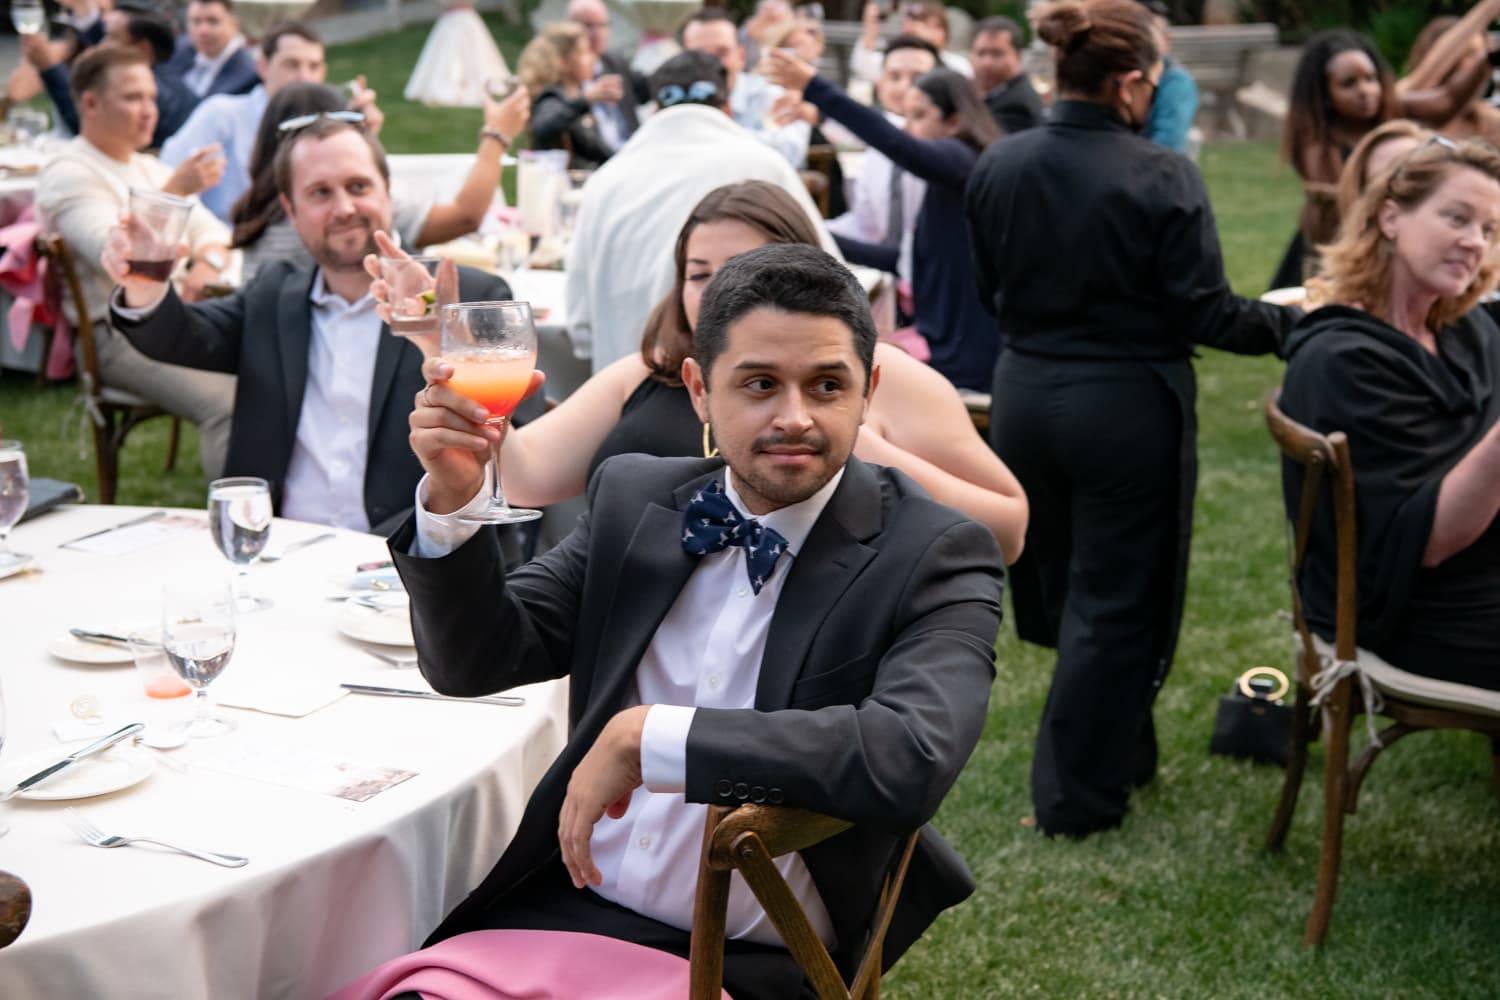 Guests toasting the couple at The Stone House in Temecula, CA